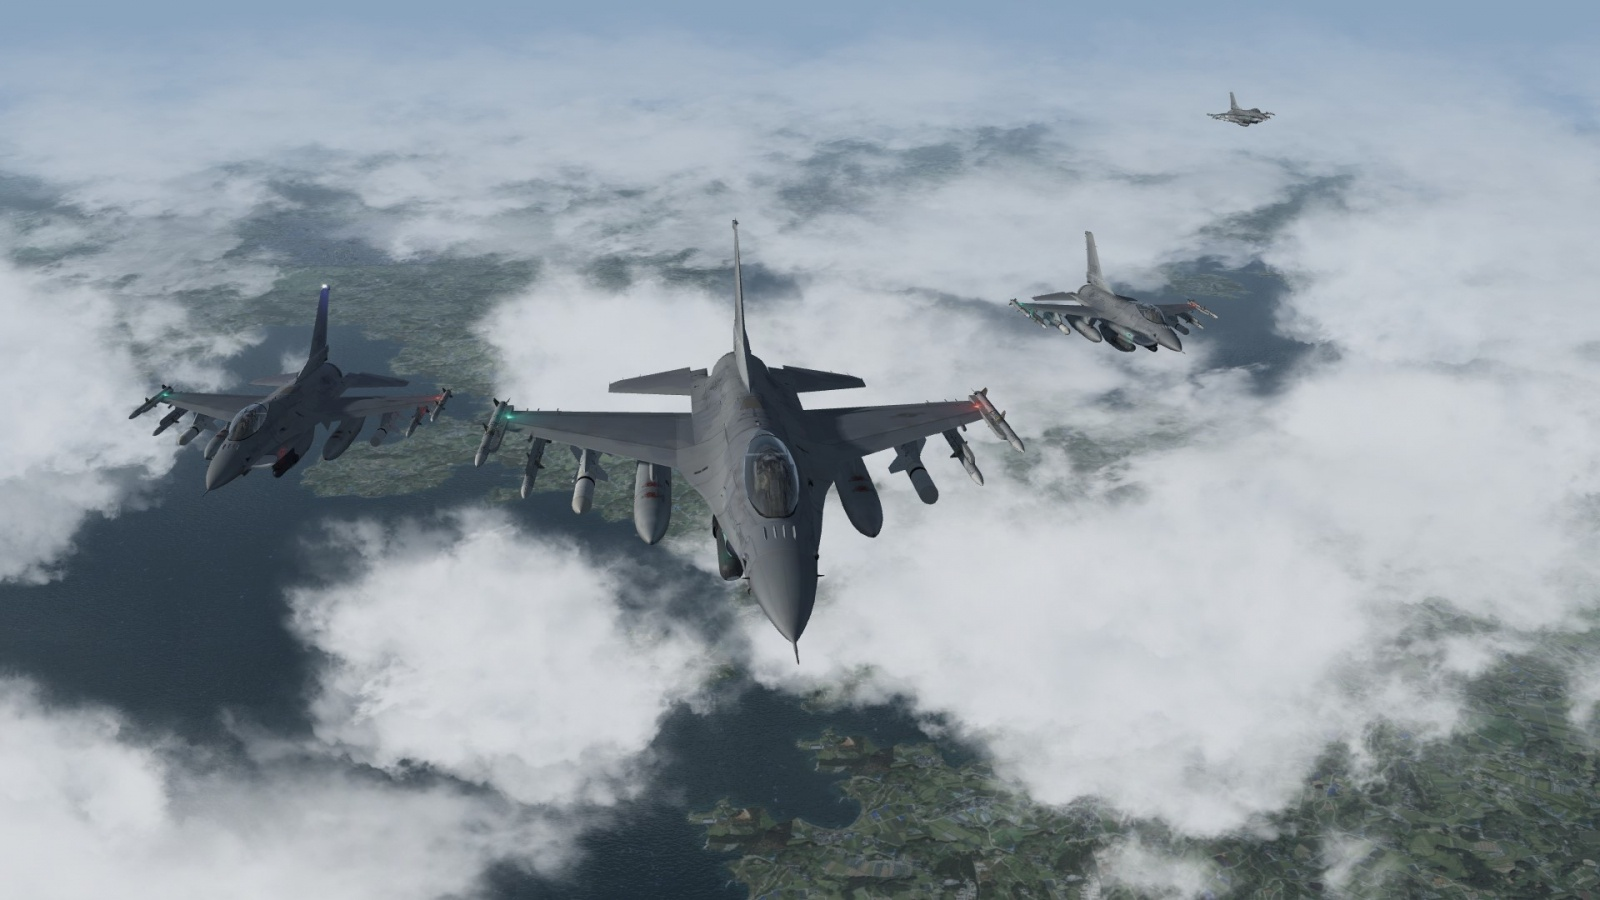 F-16 4 ships formation